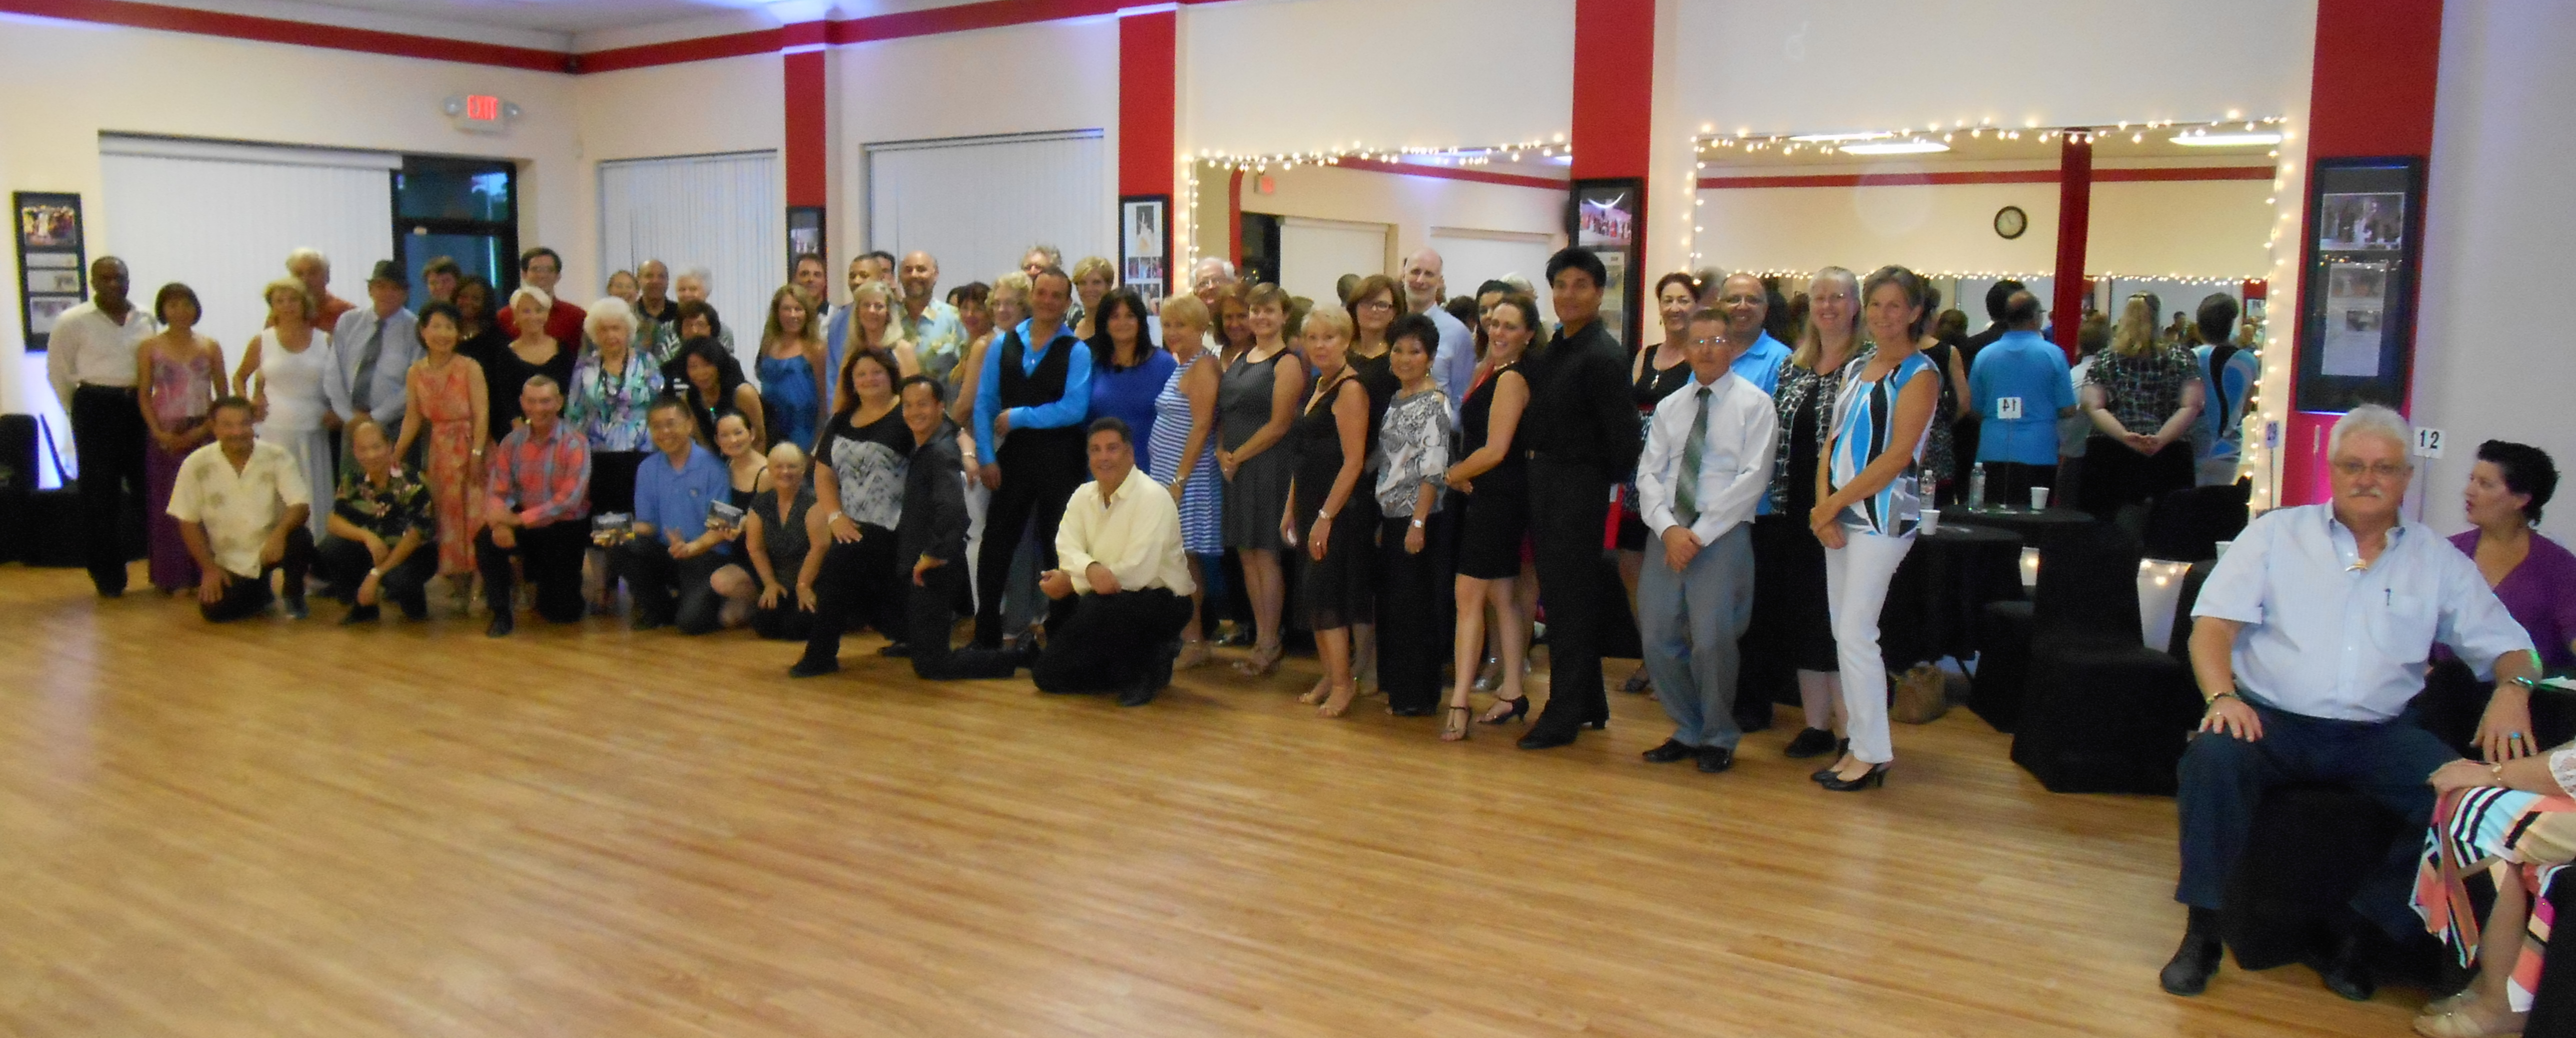 USA Dance Members & Guests August 2014